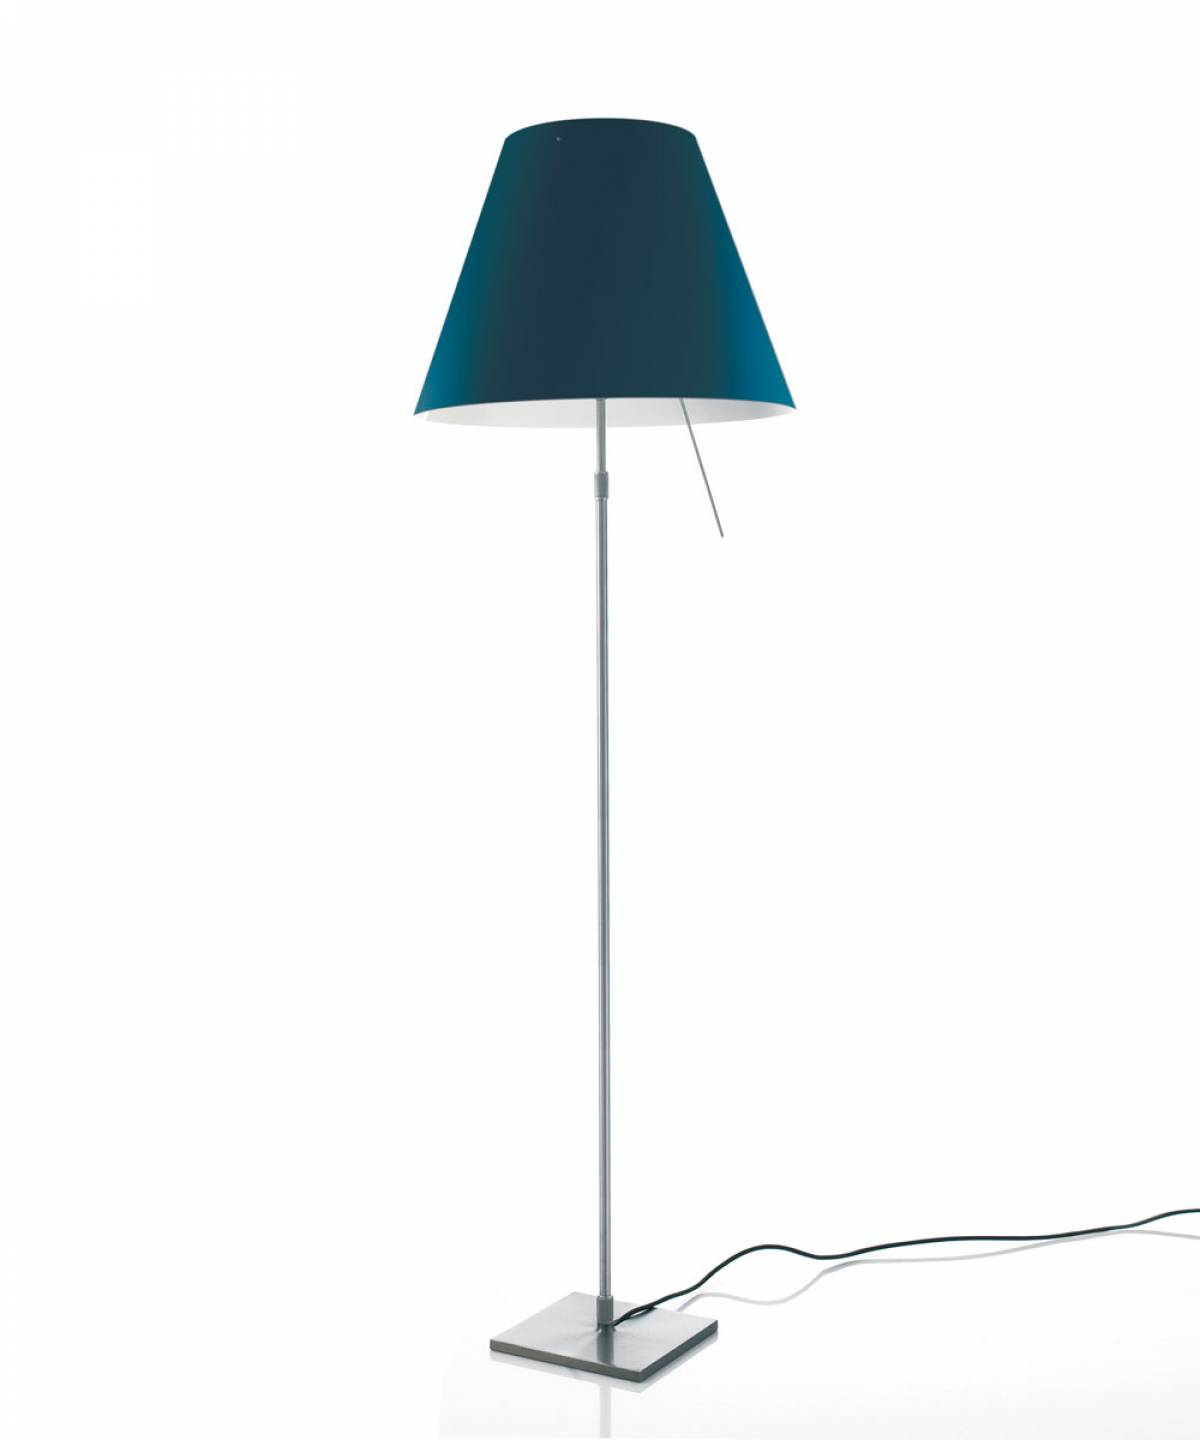 6 Costanza floor lamp Luceplan